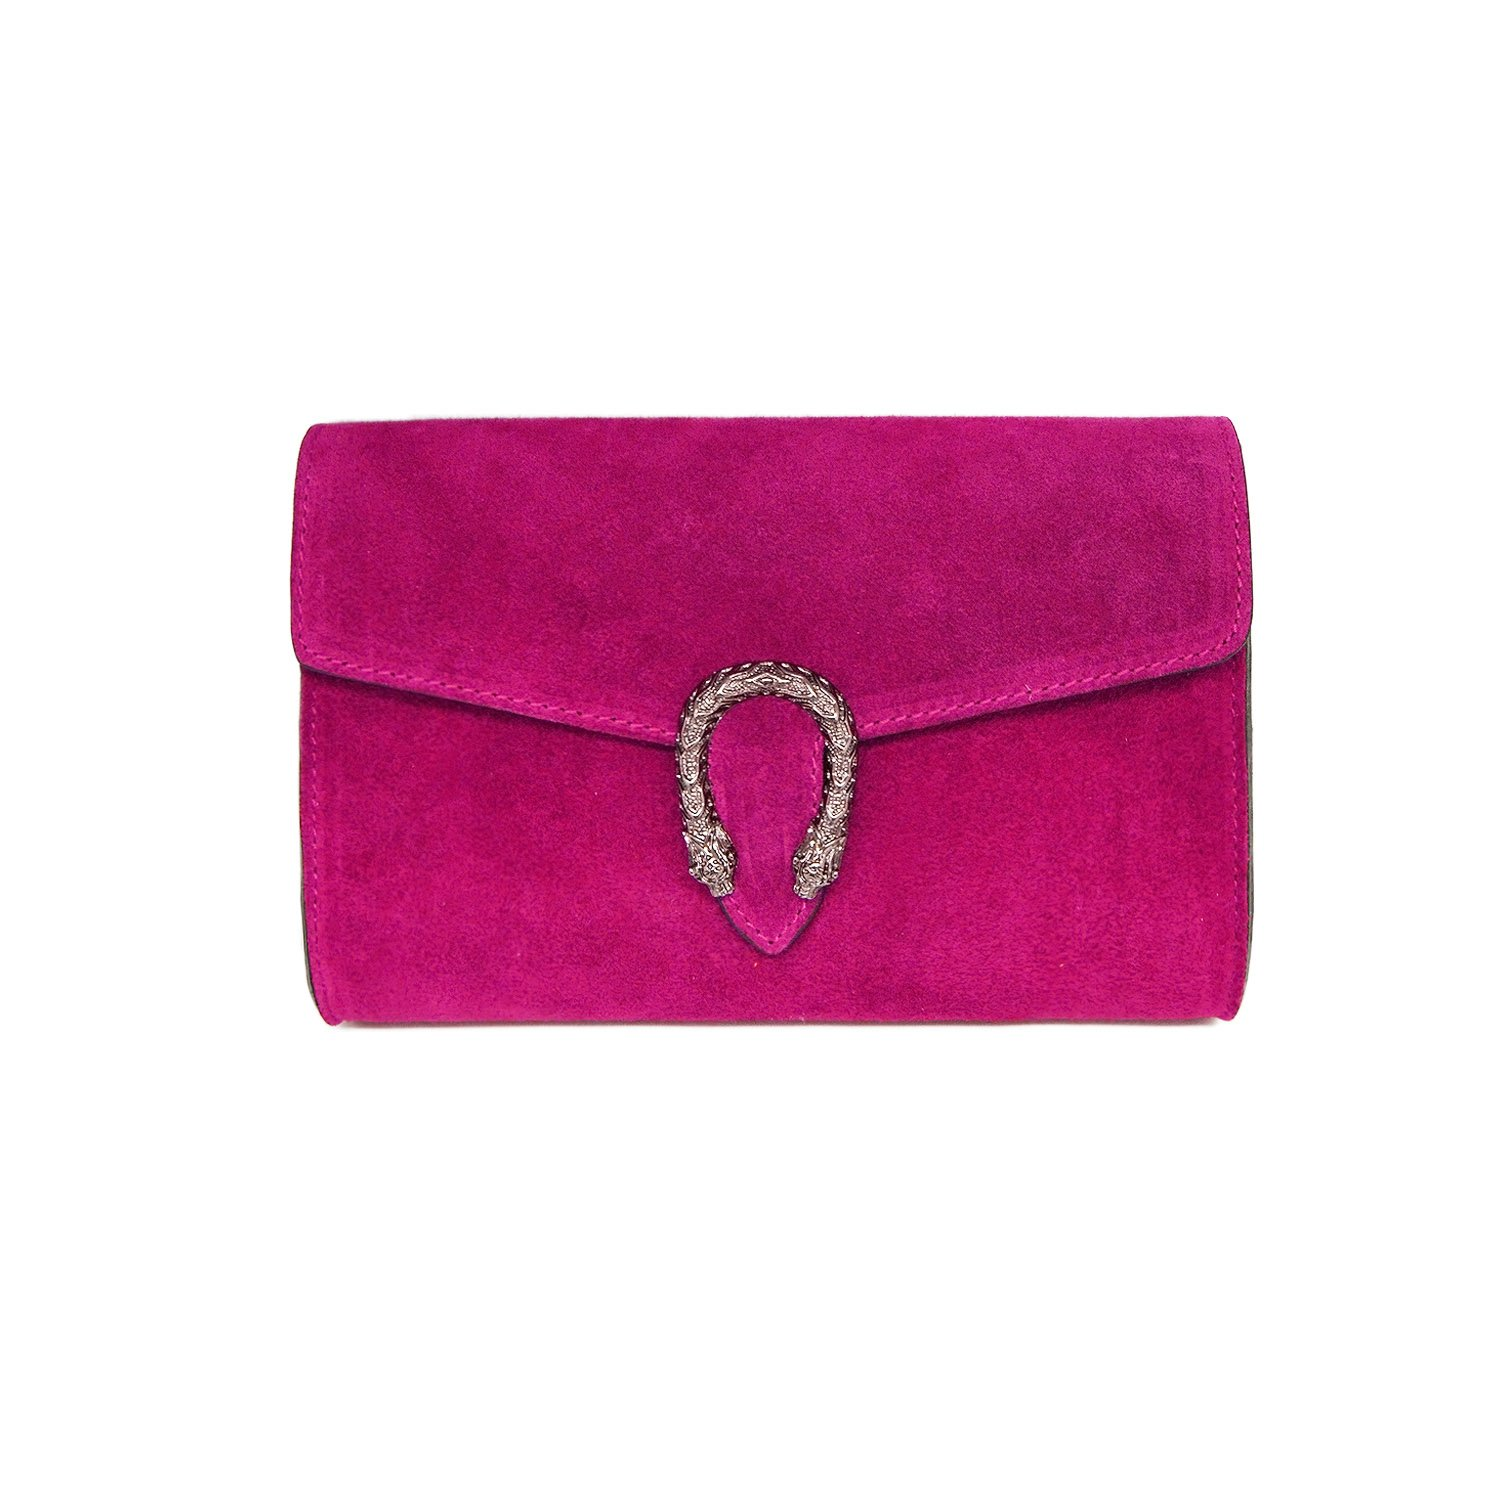 Italian cross body chain bag, designer evening purse, shoulder bag, handbag, flap bag, suede genuine leather (Clutch, Fuchsia)